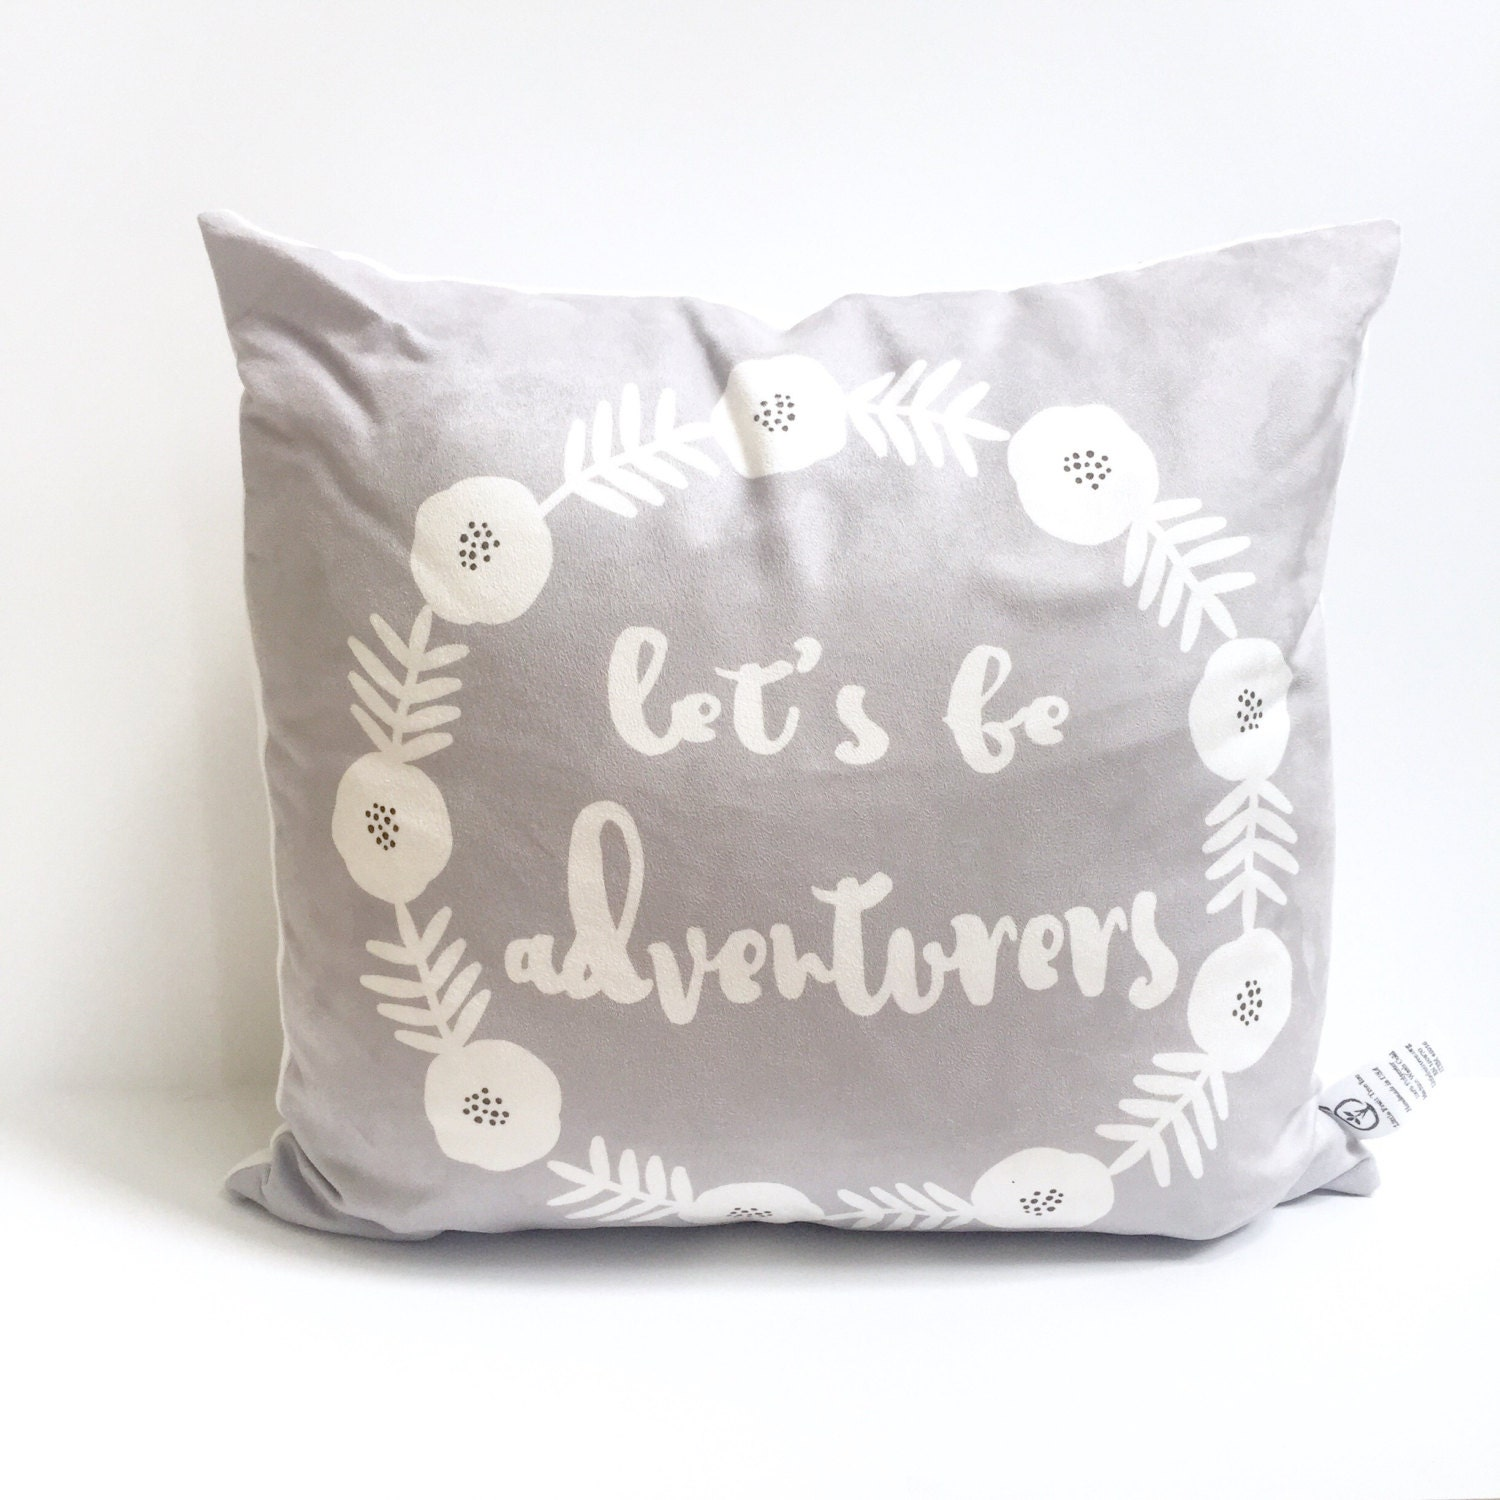 Throw Pillow For Nursery : Nursery Pillow Throw Pillow Adventure Pillow Nursery